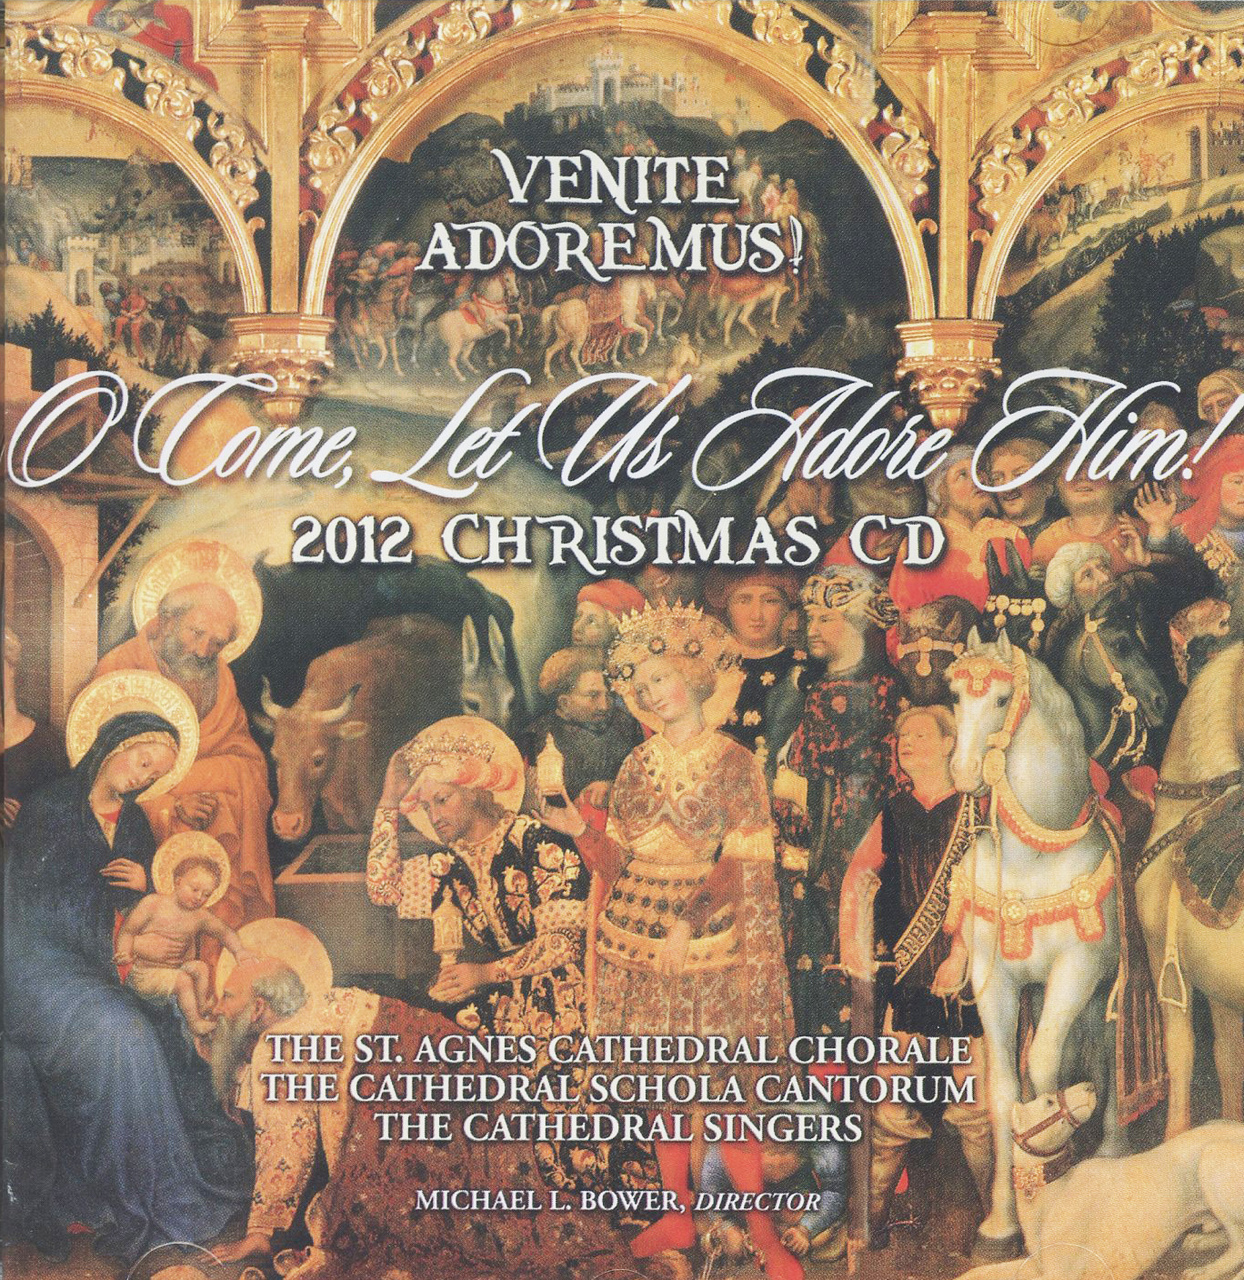 Venite adoremus   o come let us adore him by the st. agnes cathedral chorale